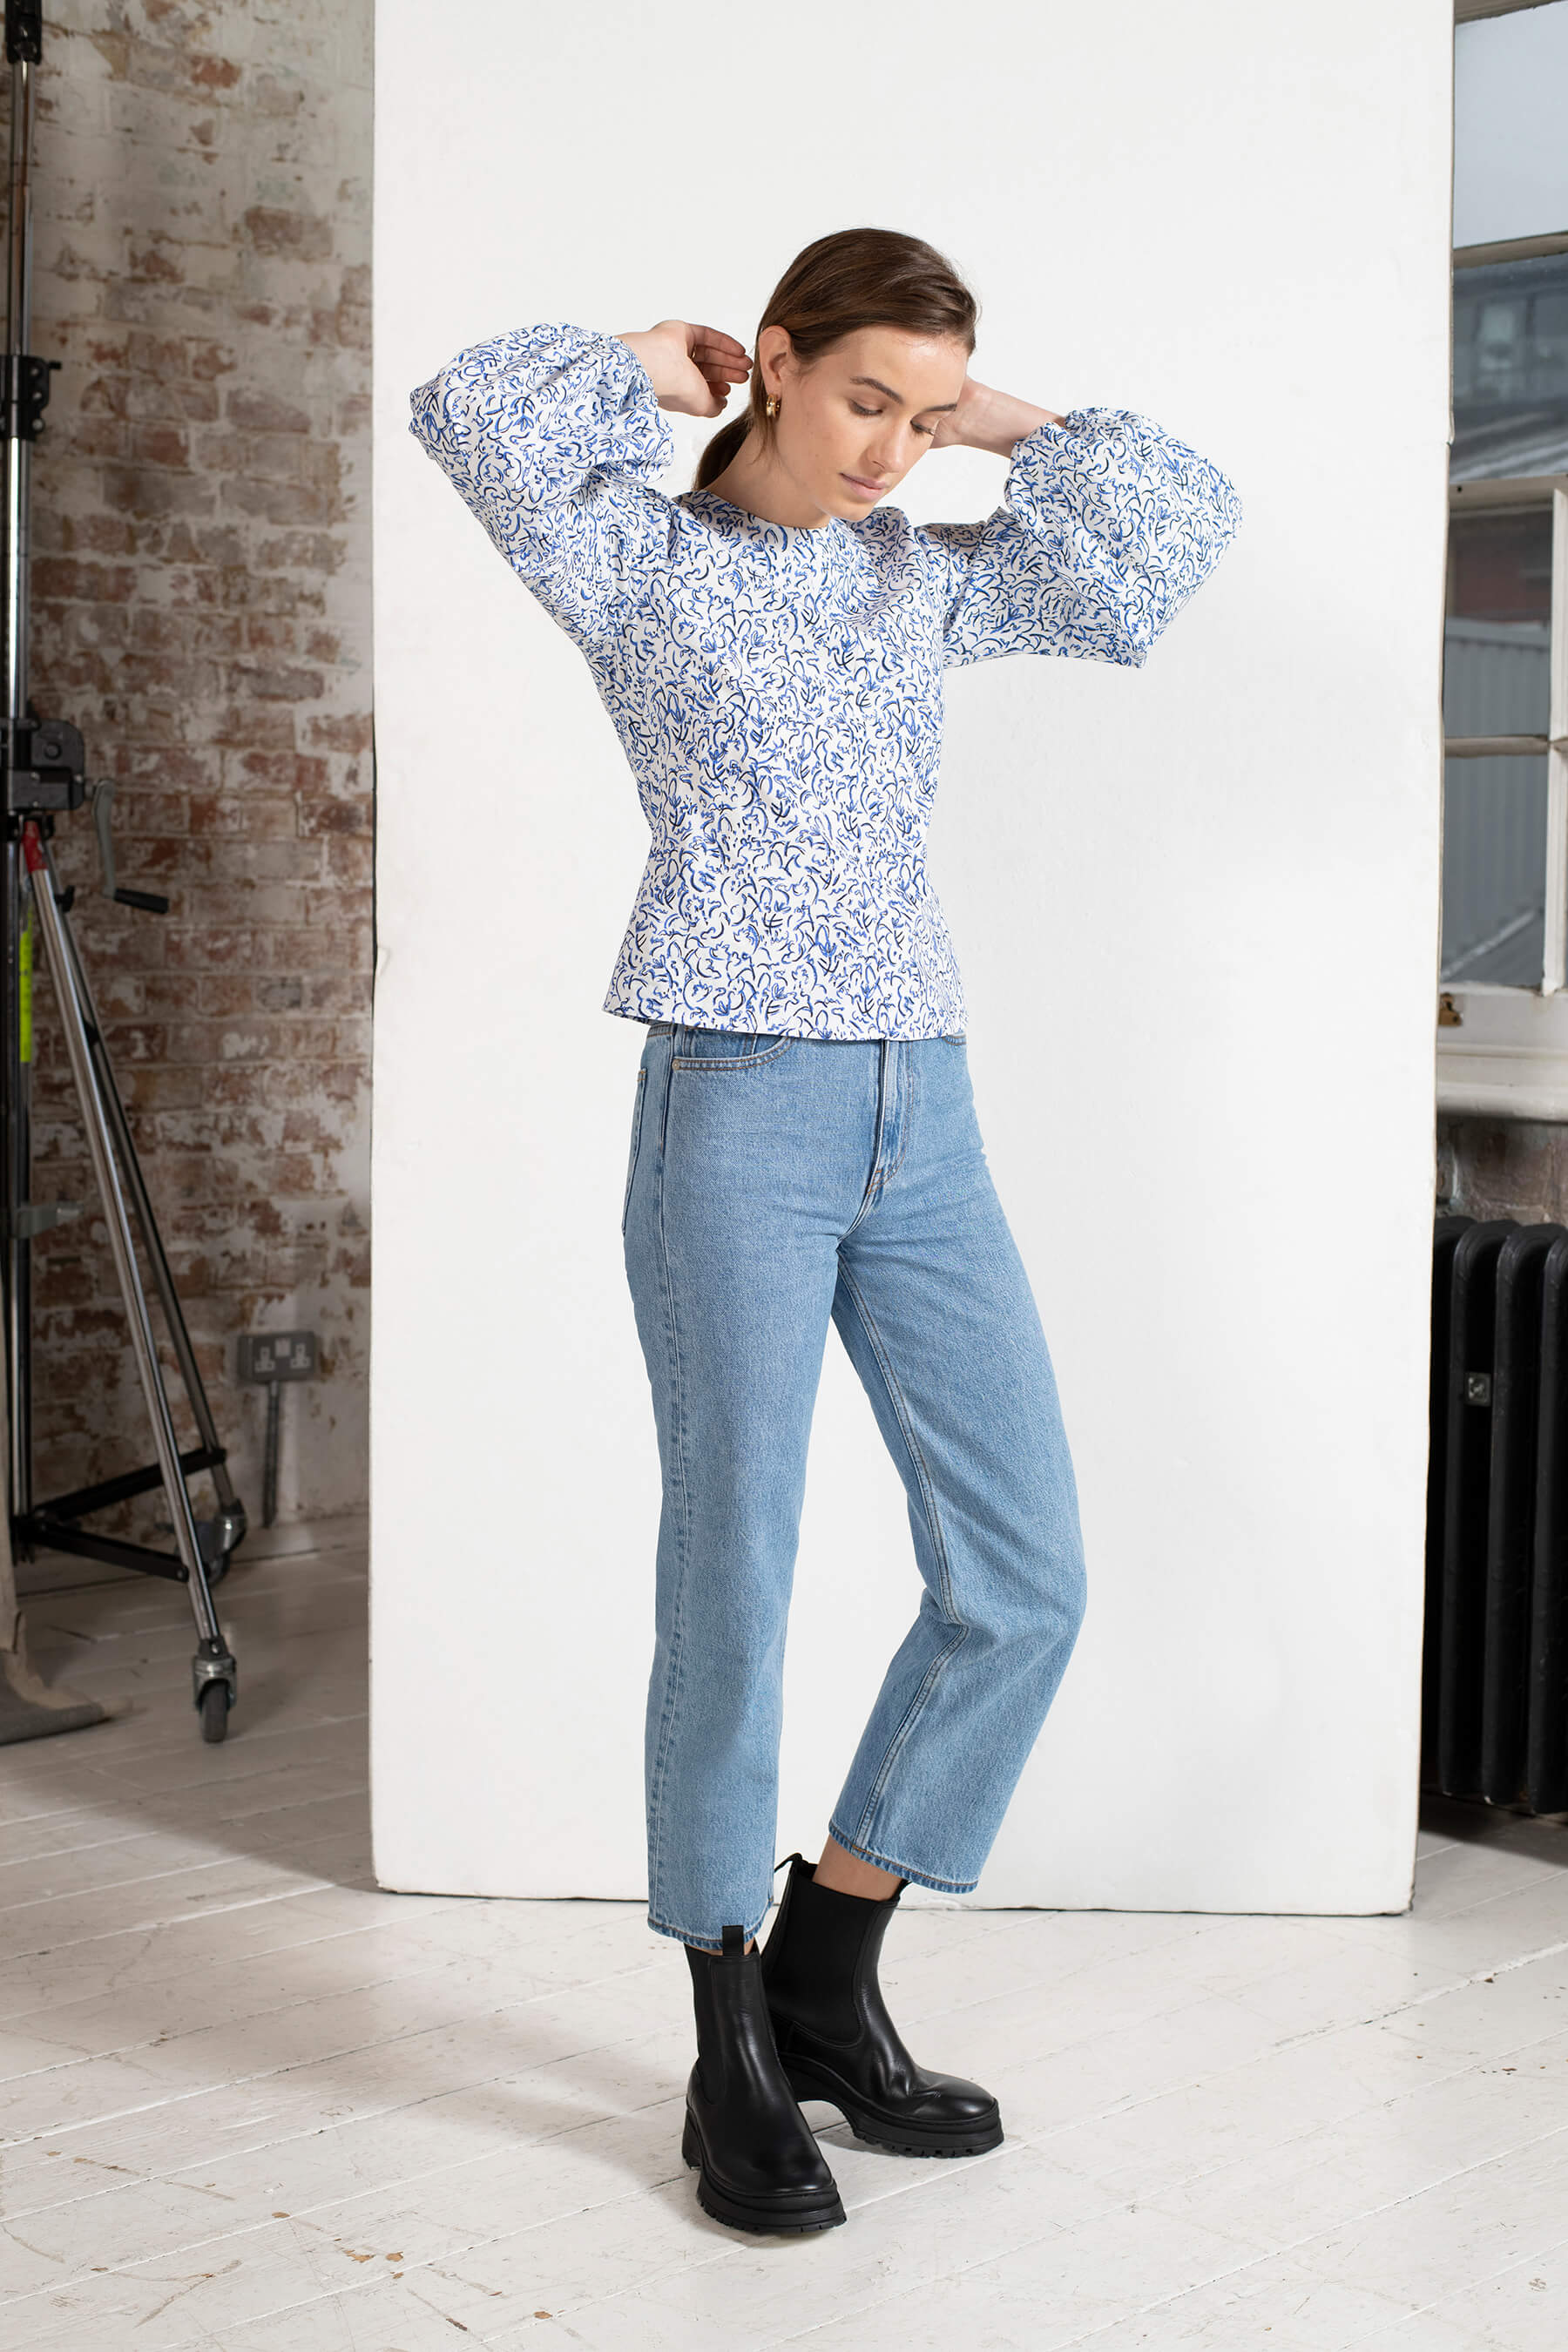 BCI Cotton Blouson Sleeve Top in Blue Squiggle Floral